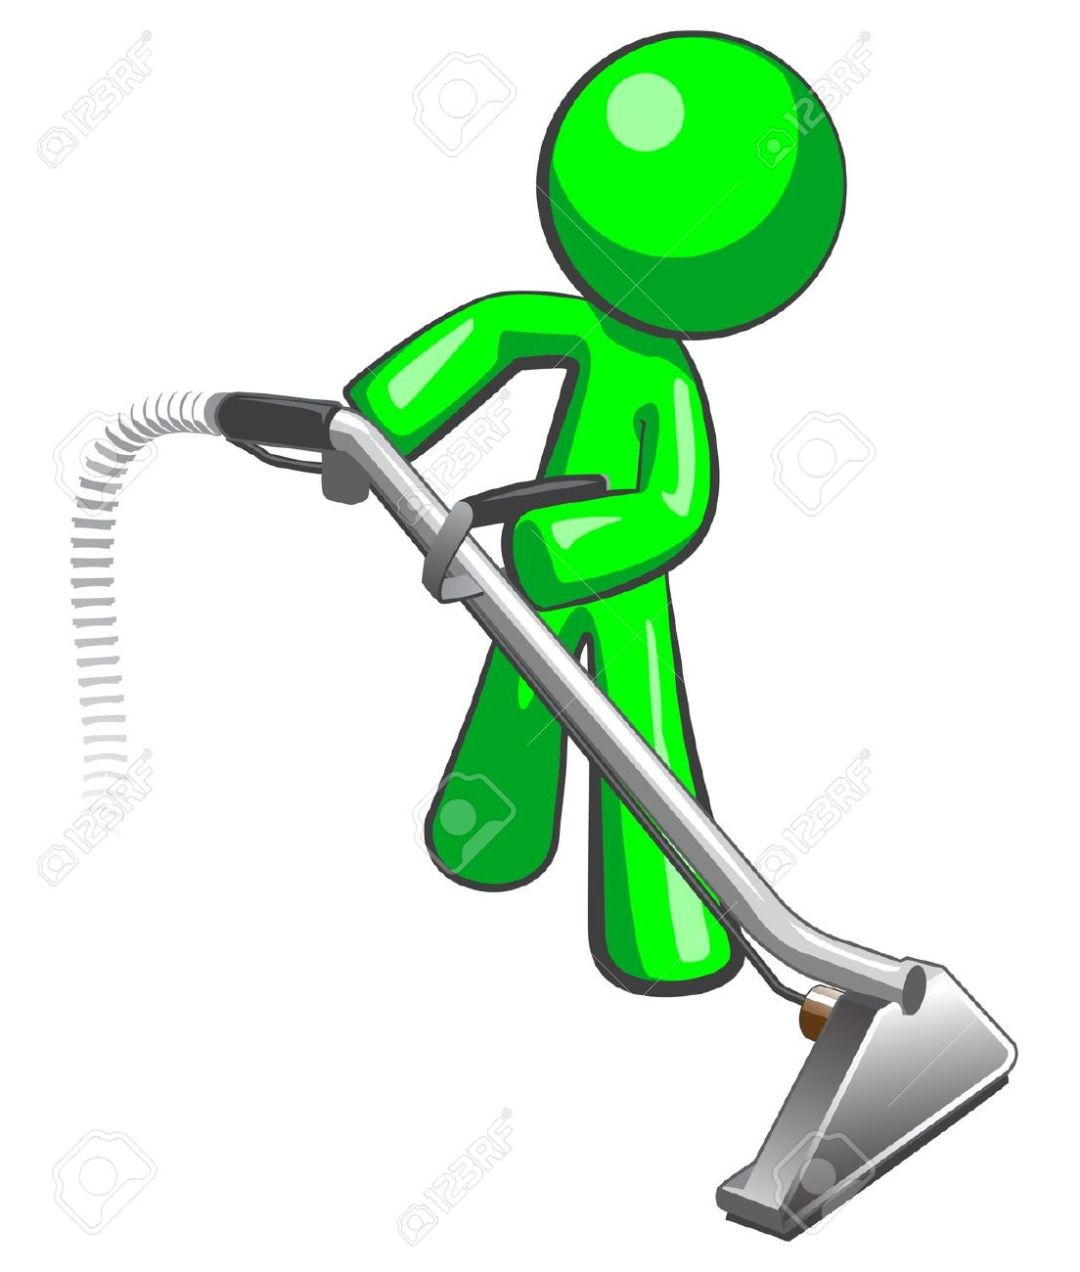 12803690-Green-man-with-steam-cleaner-carpet-wand-extracting-floor-Stock-Vector